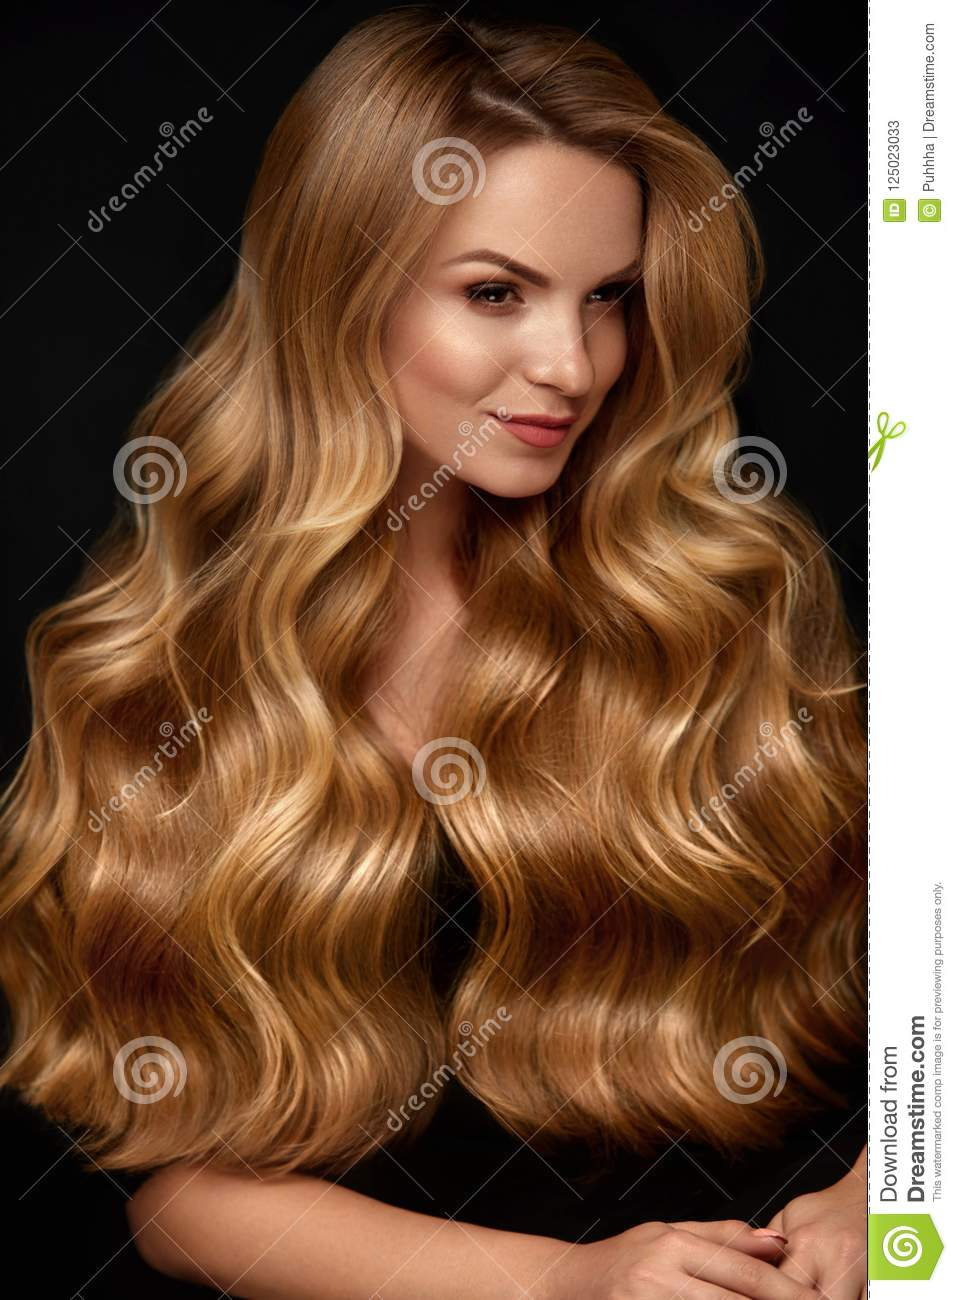 Long Blonde Hair Woman With Wavy Hairstyle Beauty Face Stock Image